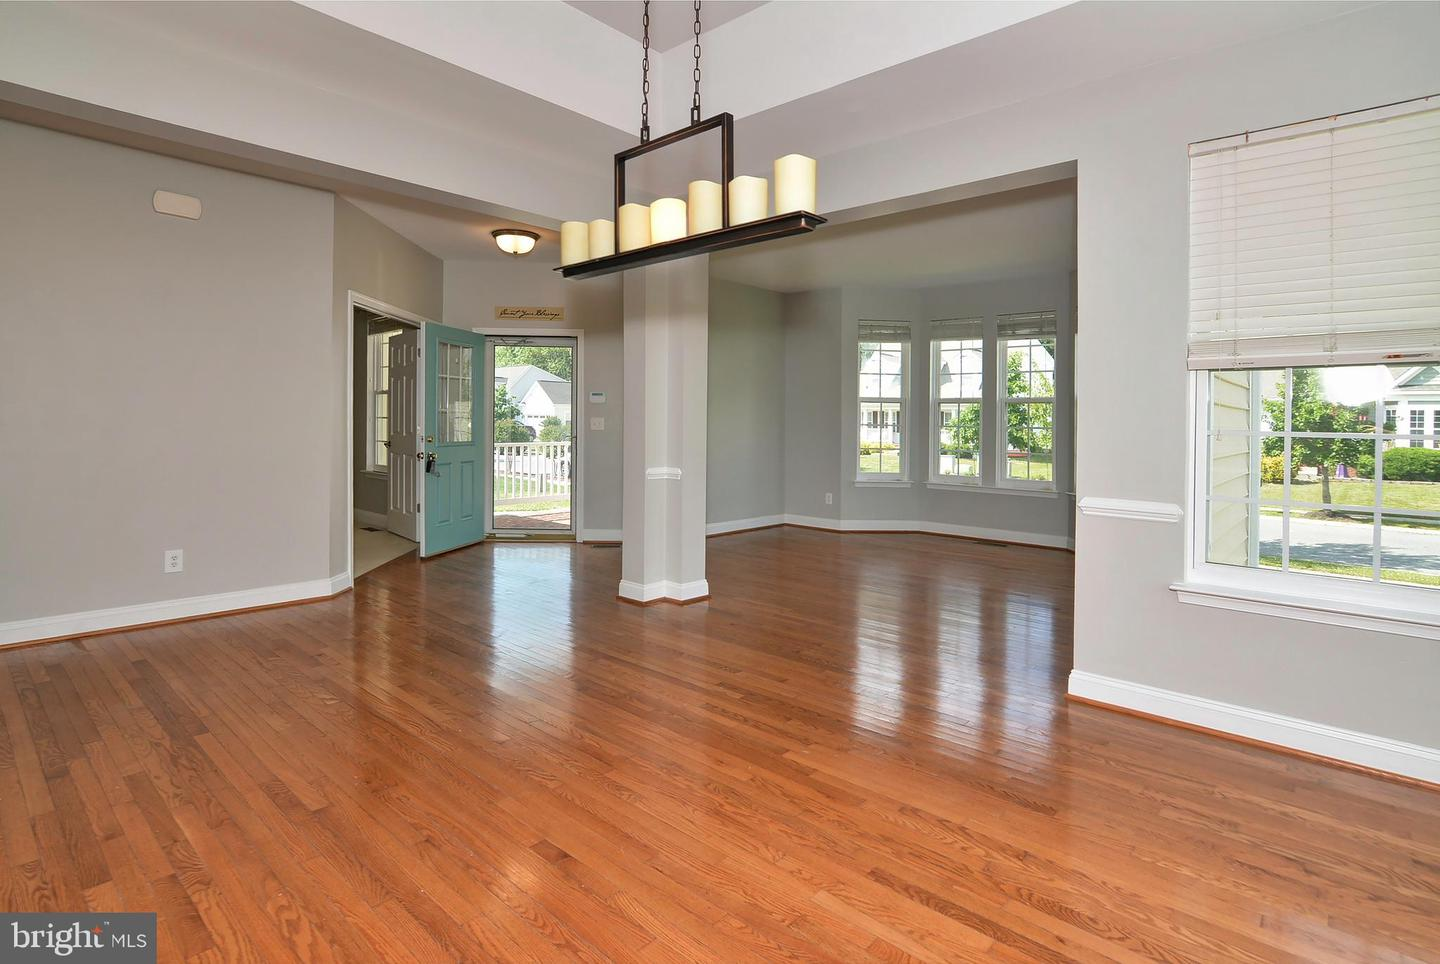 Single Family for Sale at 117 Regulator Dr N Cambridge, Maryland 21613 United States